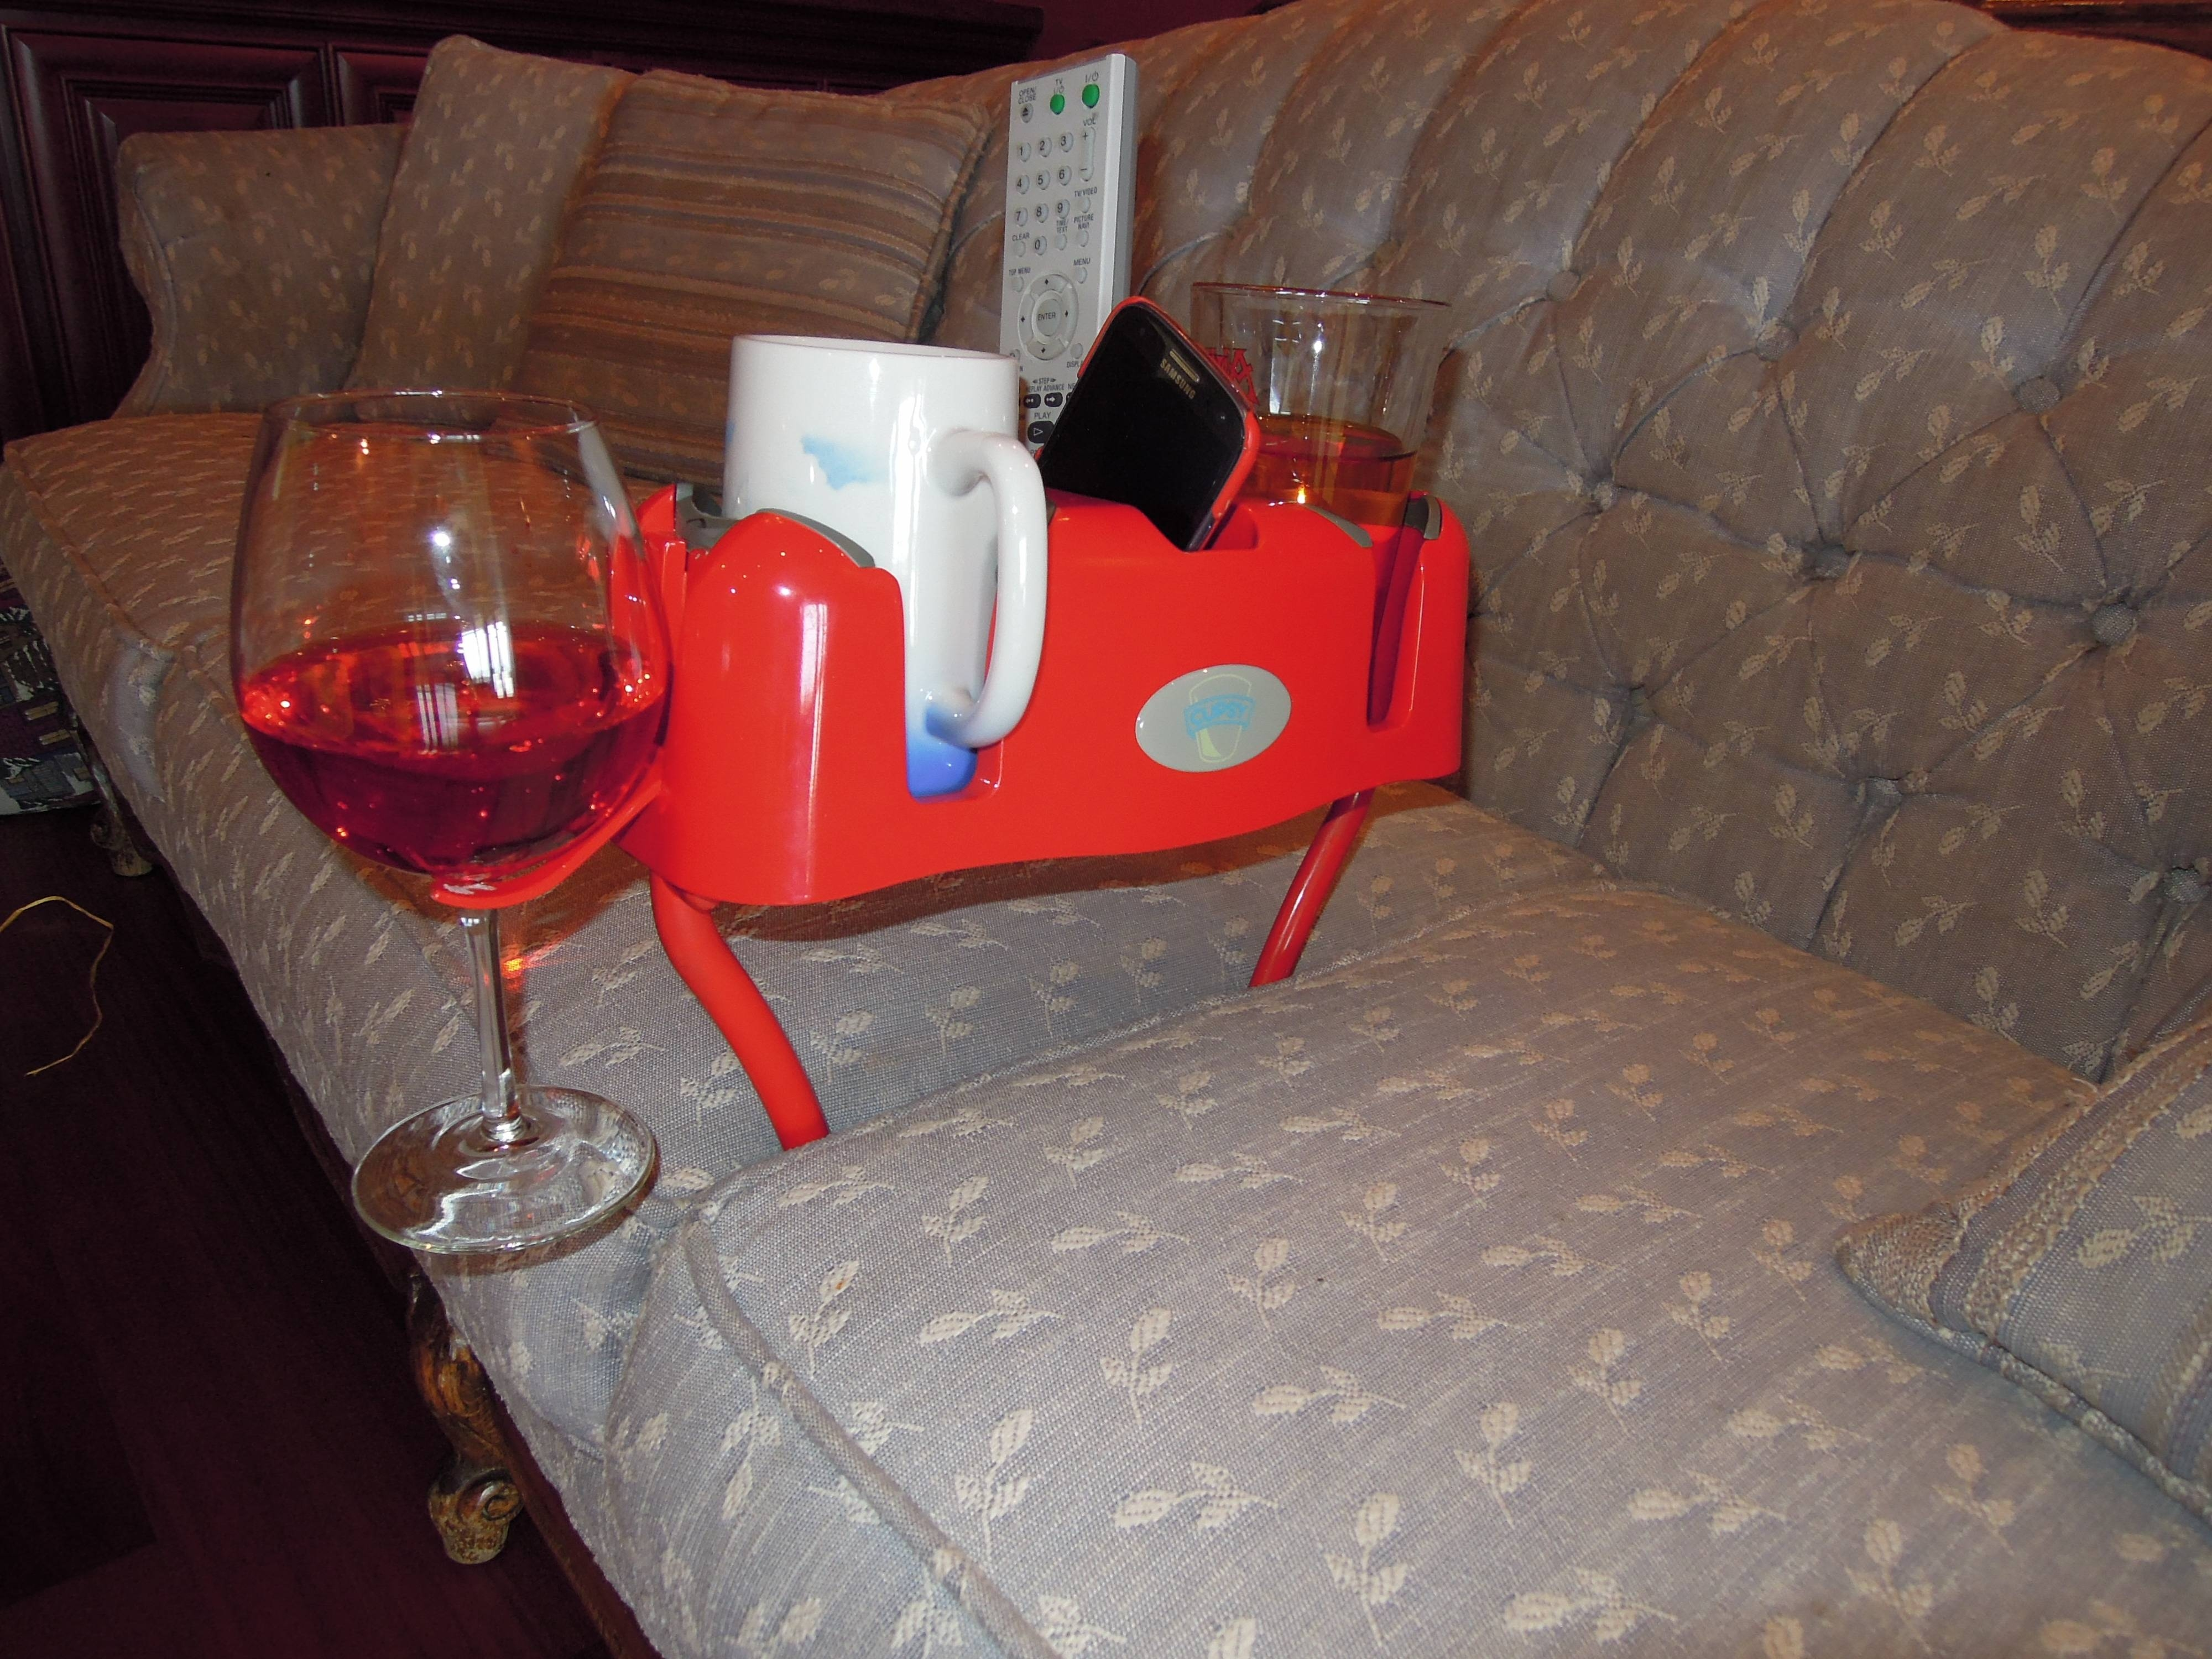 Cupsy - The World's Most Overachieving Cupholder throughout Sofas With Drink Holder (Image 3 of 15)